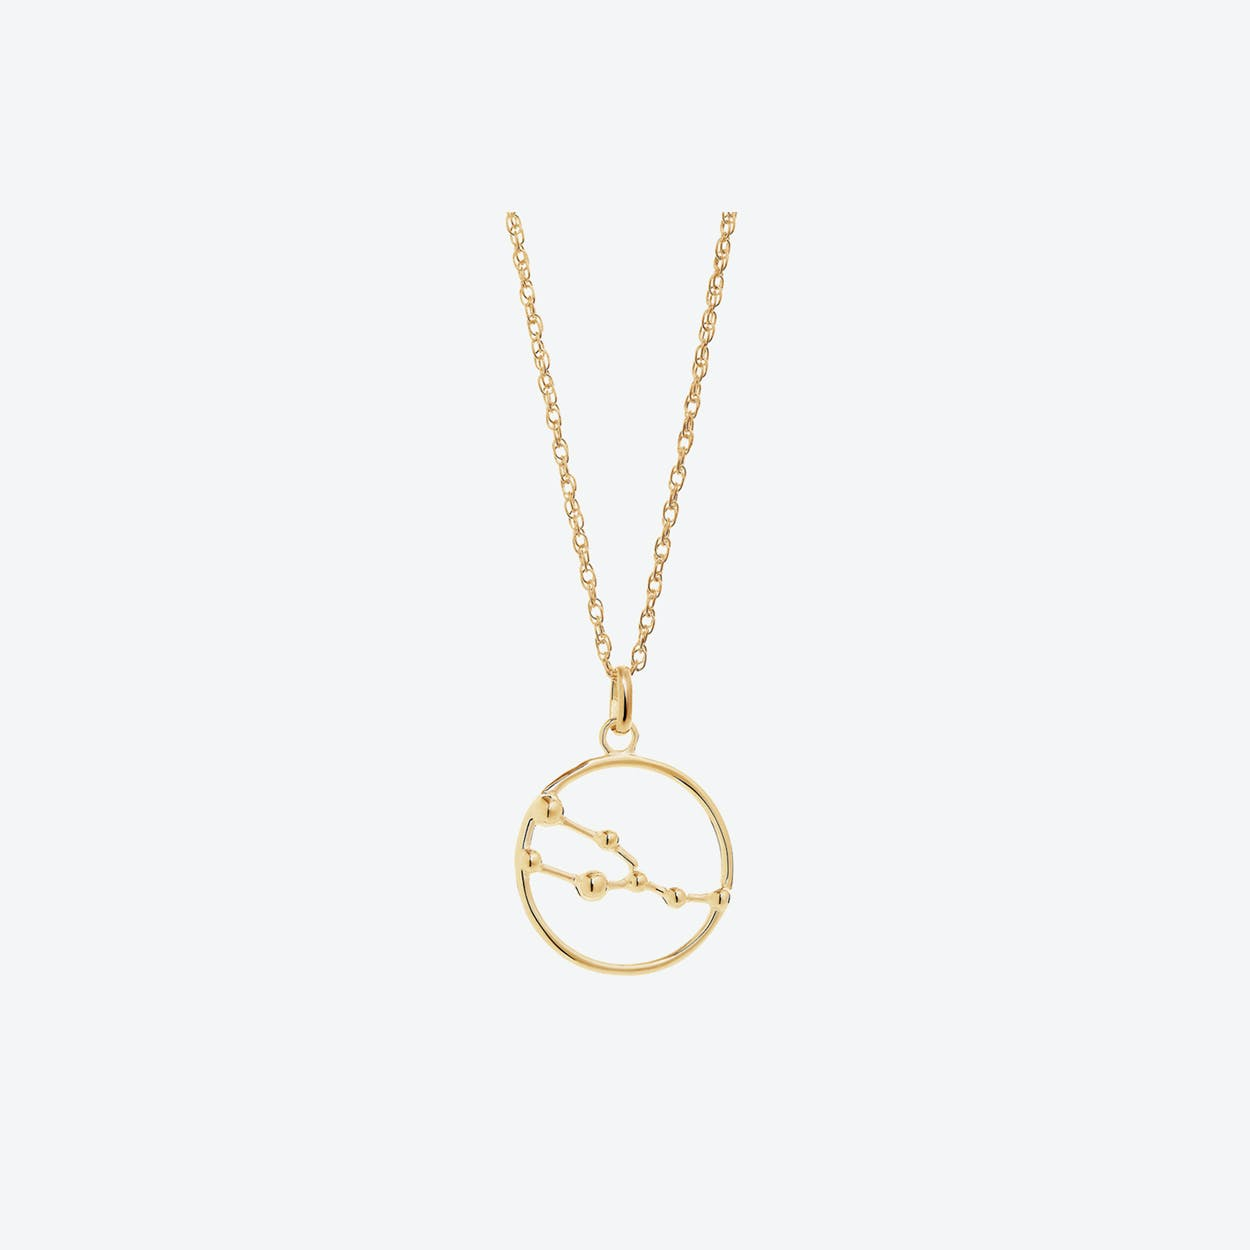 Gold Taurus Astrology Necklace By Yasmin Everley Jewellery Fy